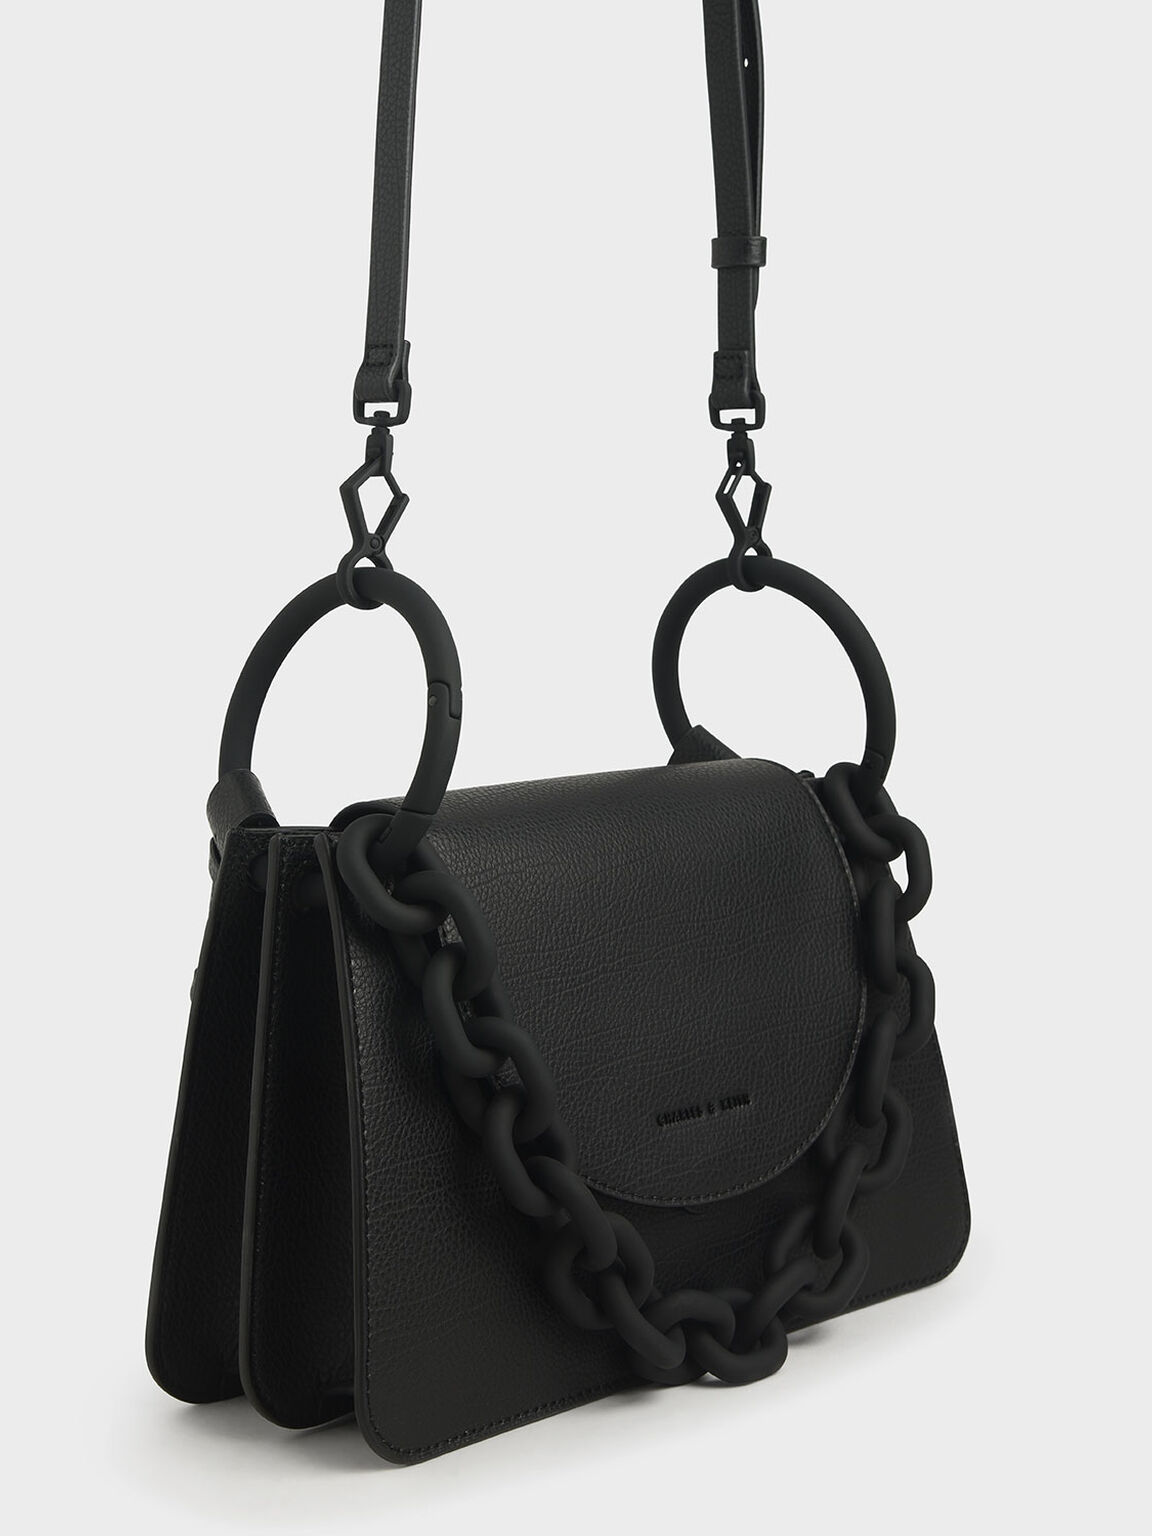 Chunky Chain Link Shoulder Bag, Black, hi-res